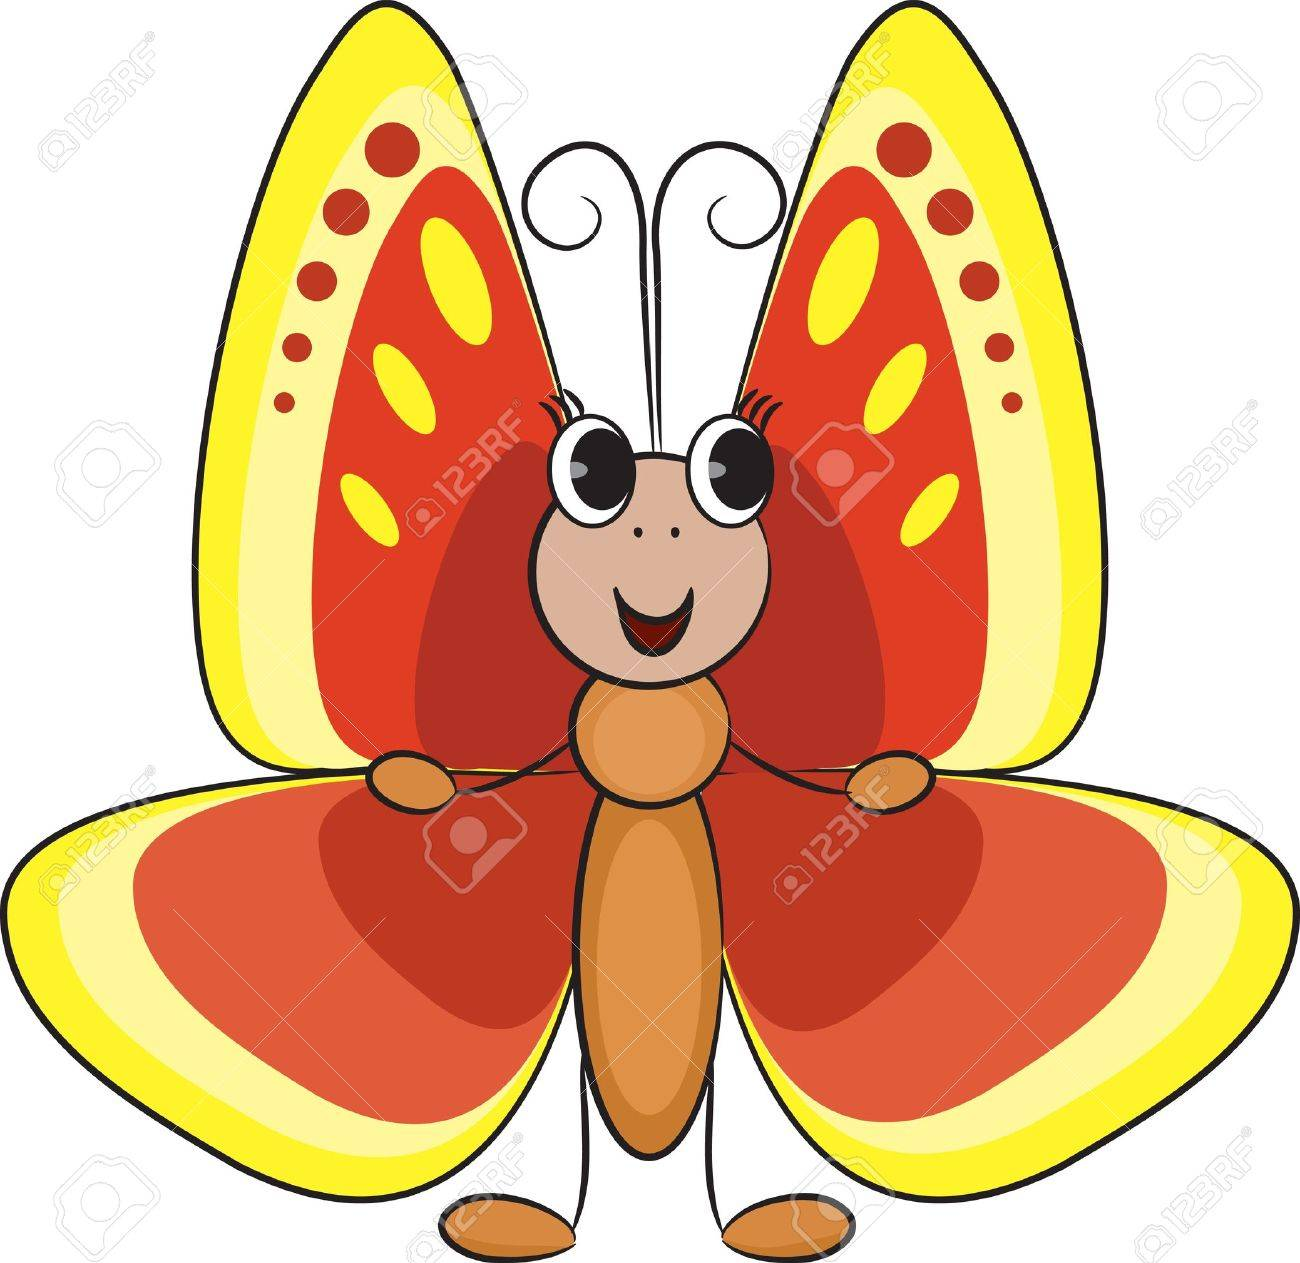 cute cartoon butterfly royalty free cliparts vectors and stock